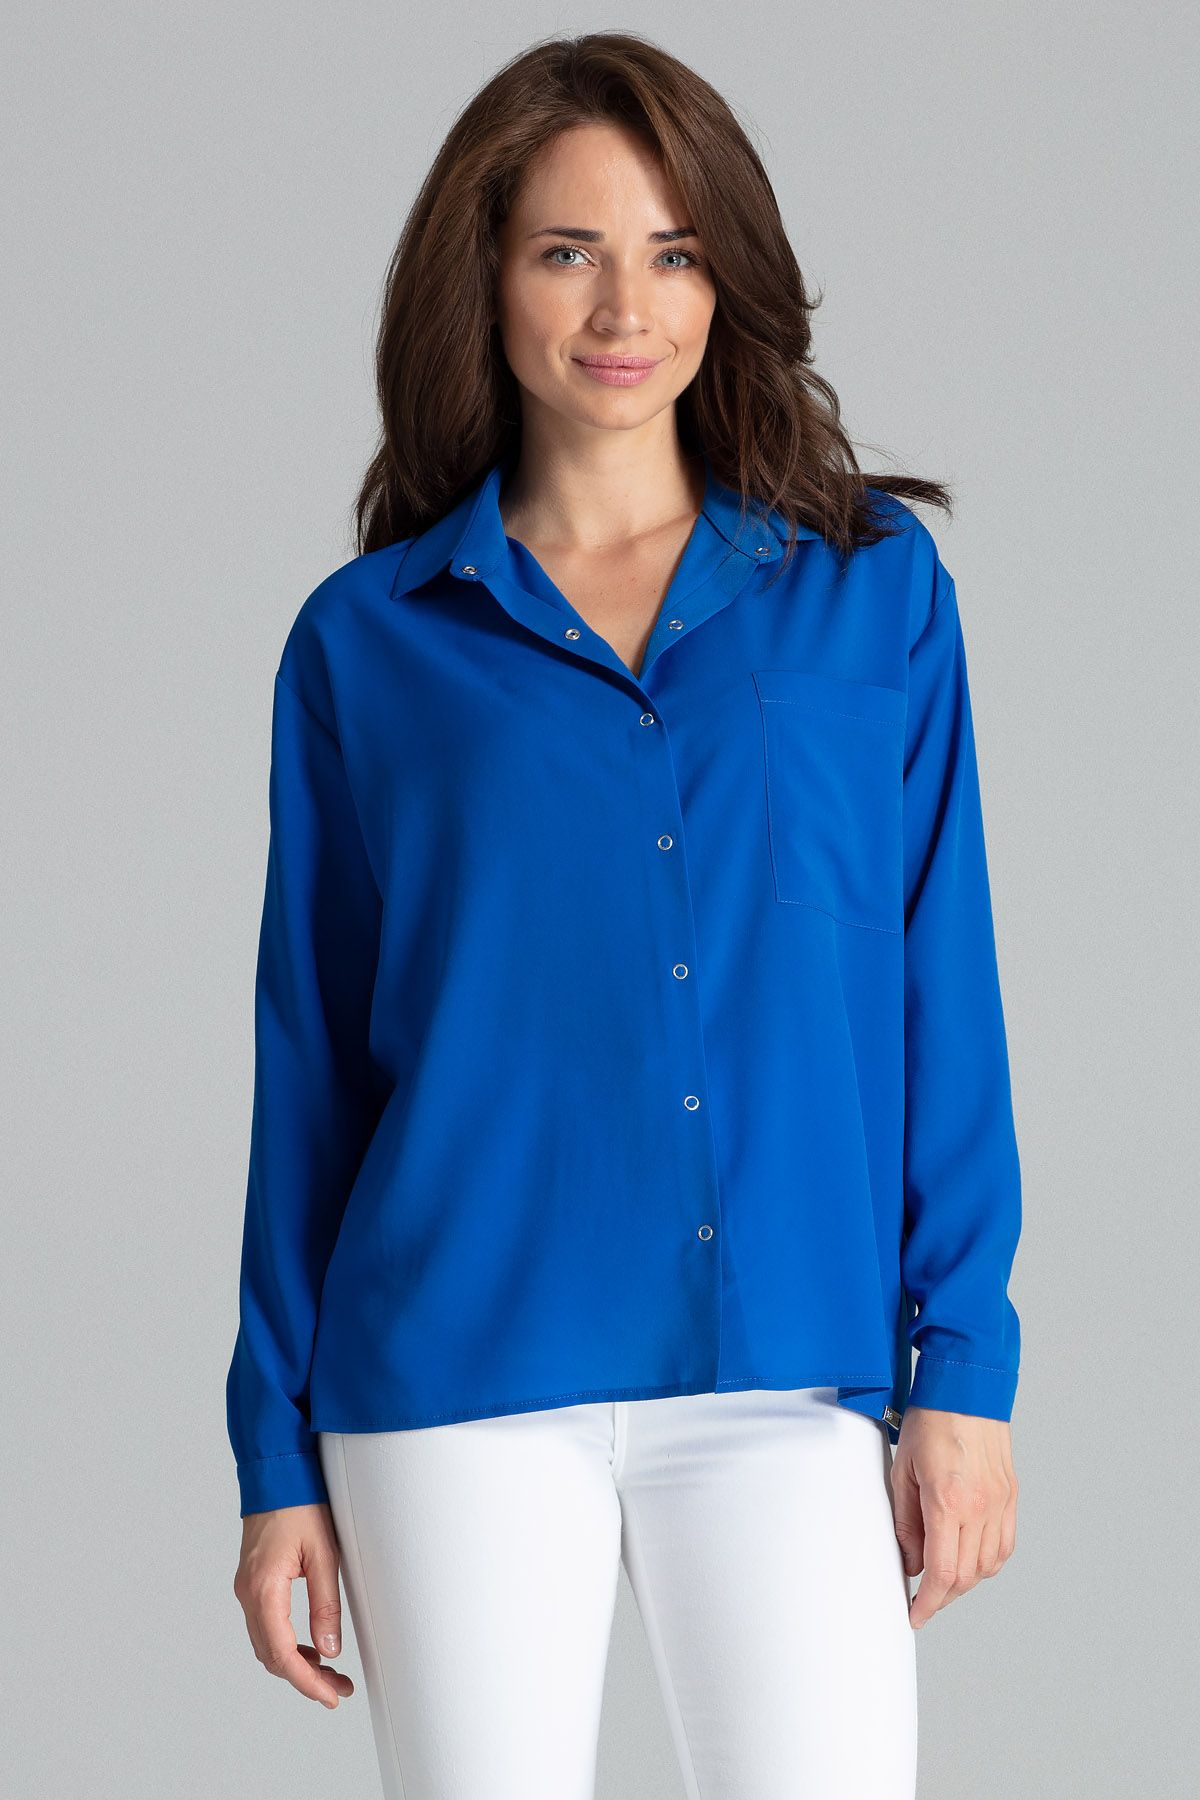 Sapphire Classic Blouse With a Collar